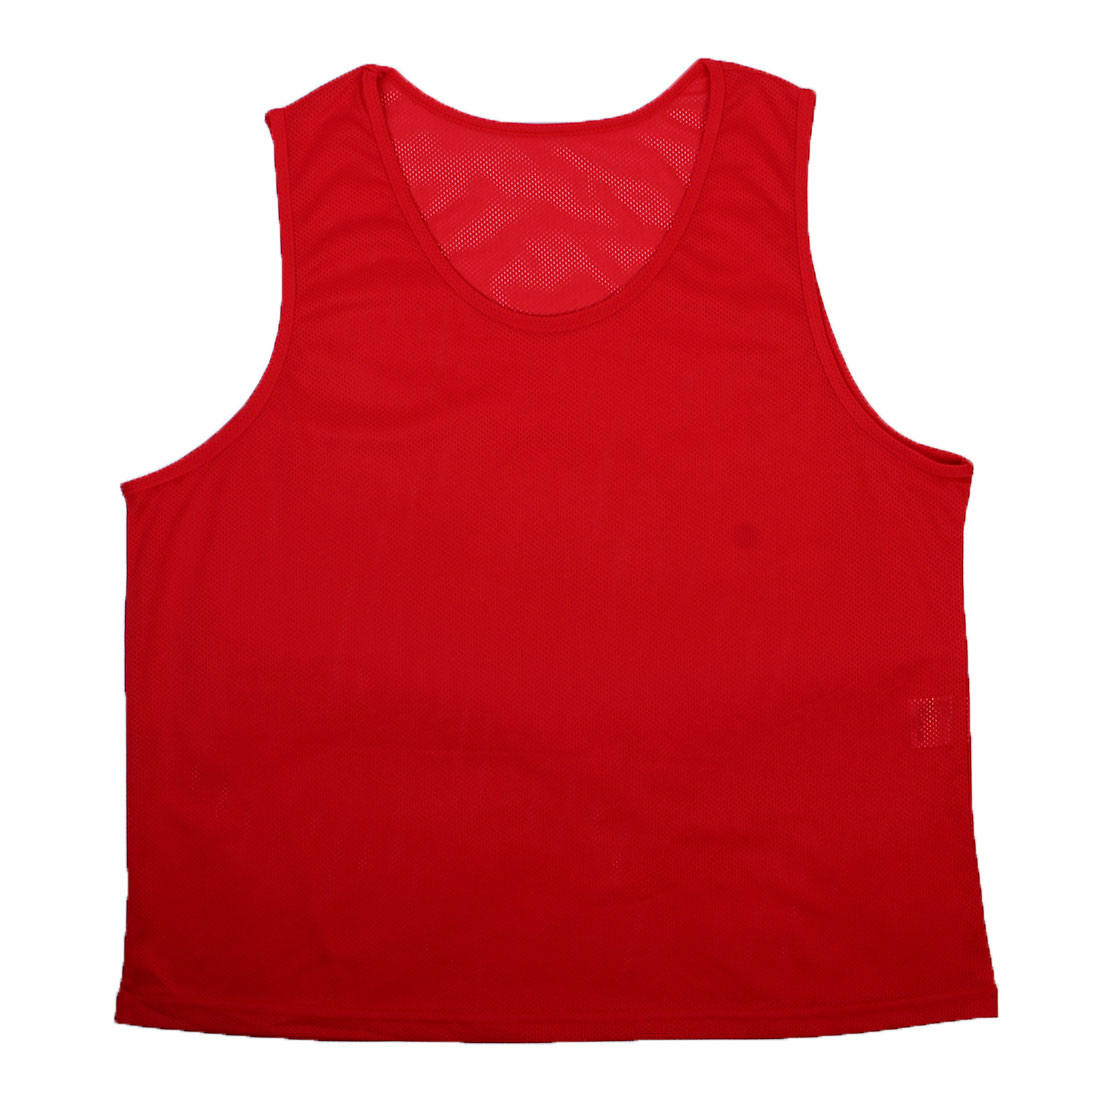 Sports Training Vest Soccer Bib for Adult Basketball Football Volleybal by Unique-Bargains